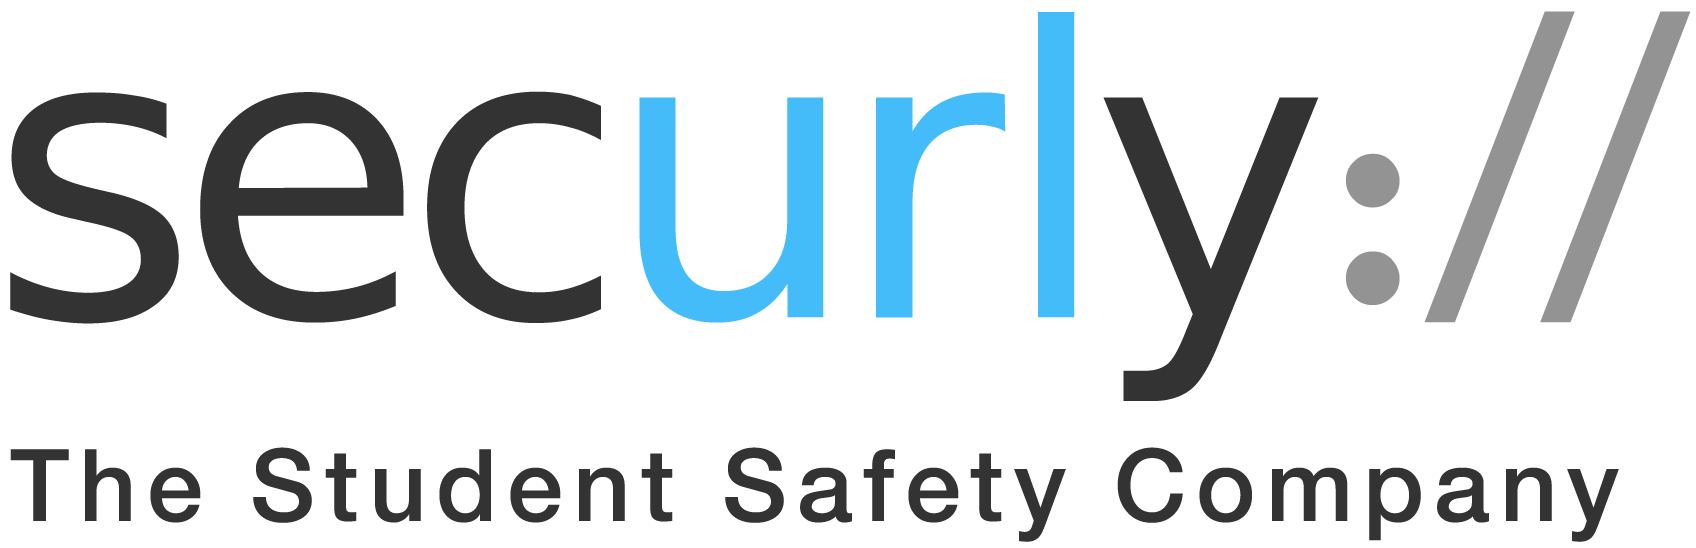 securly-logo-tagline